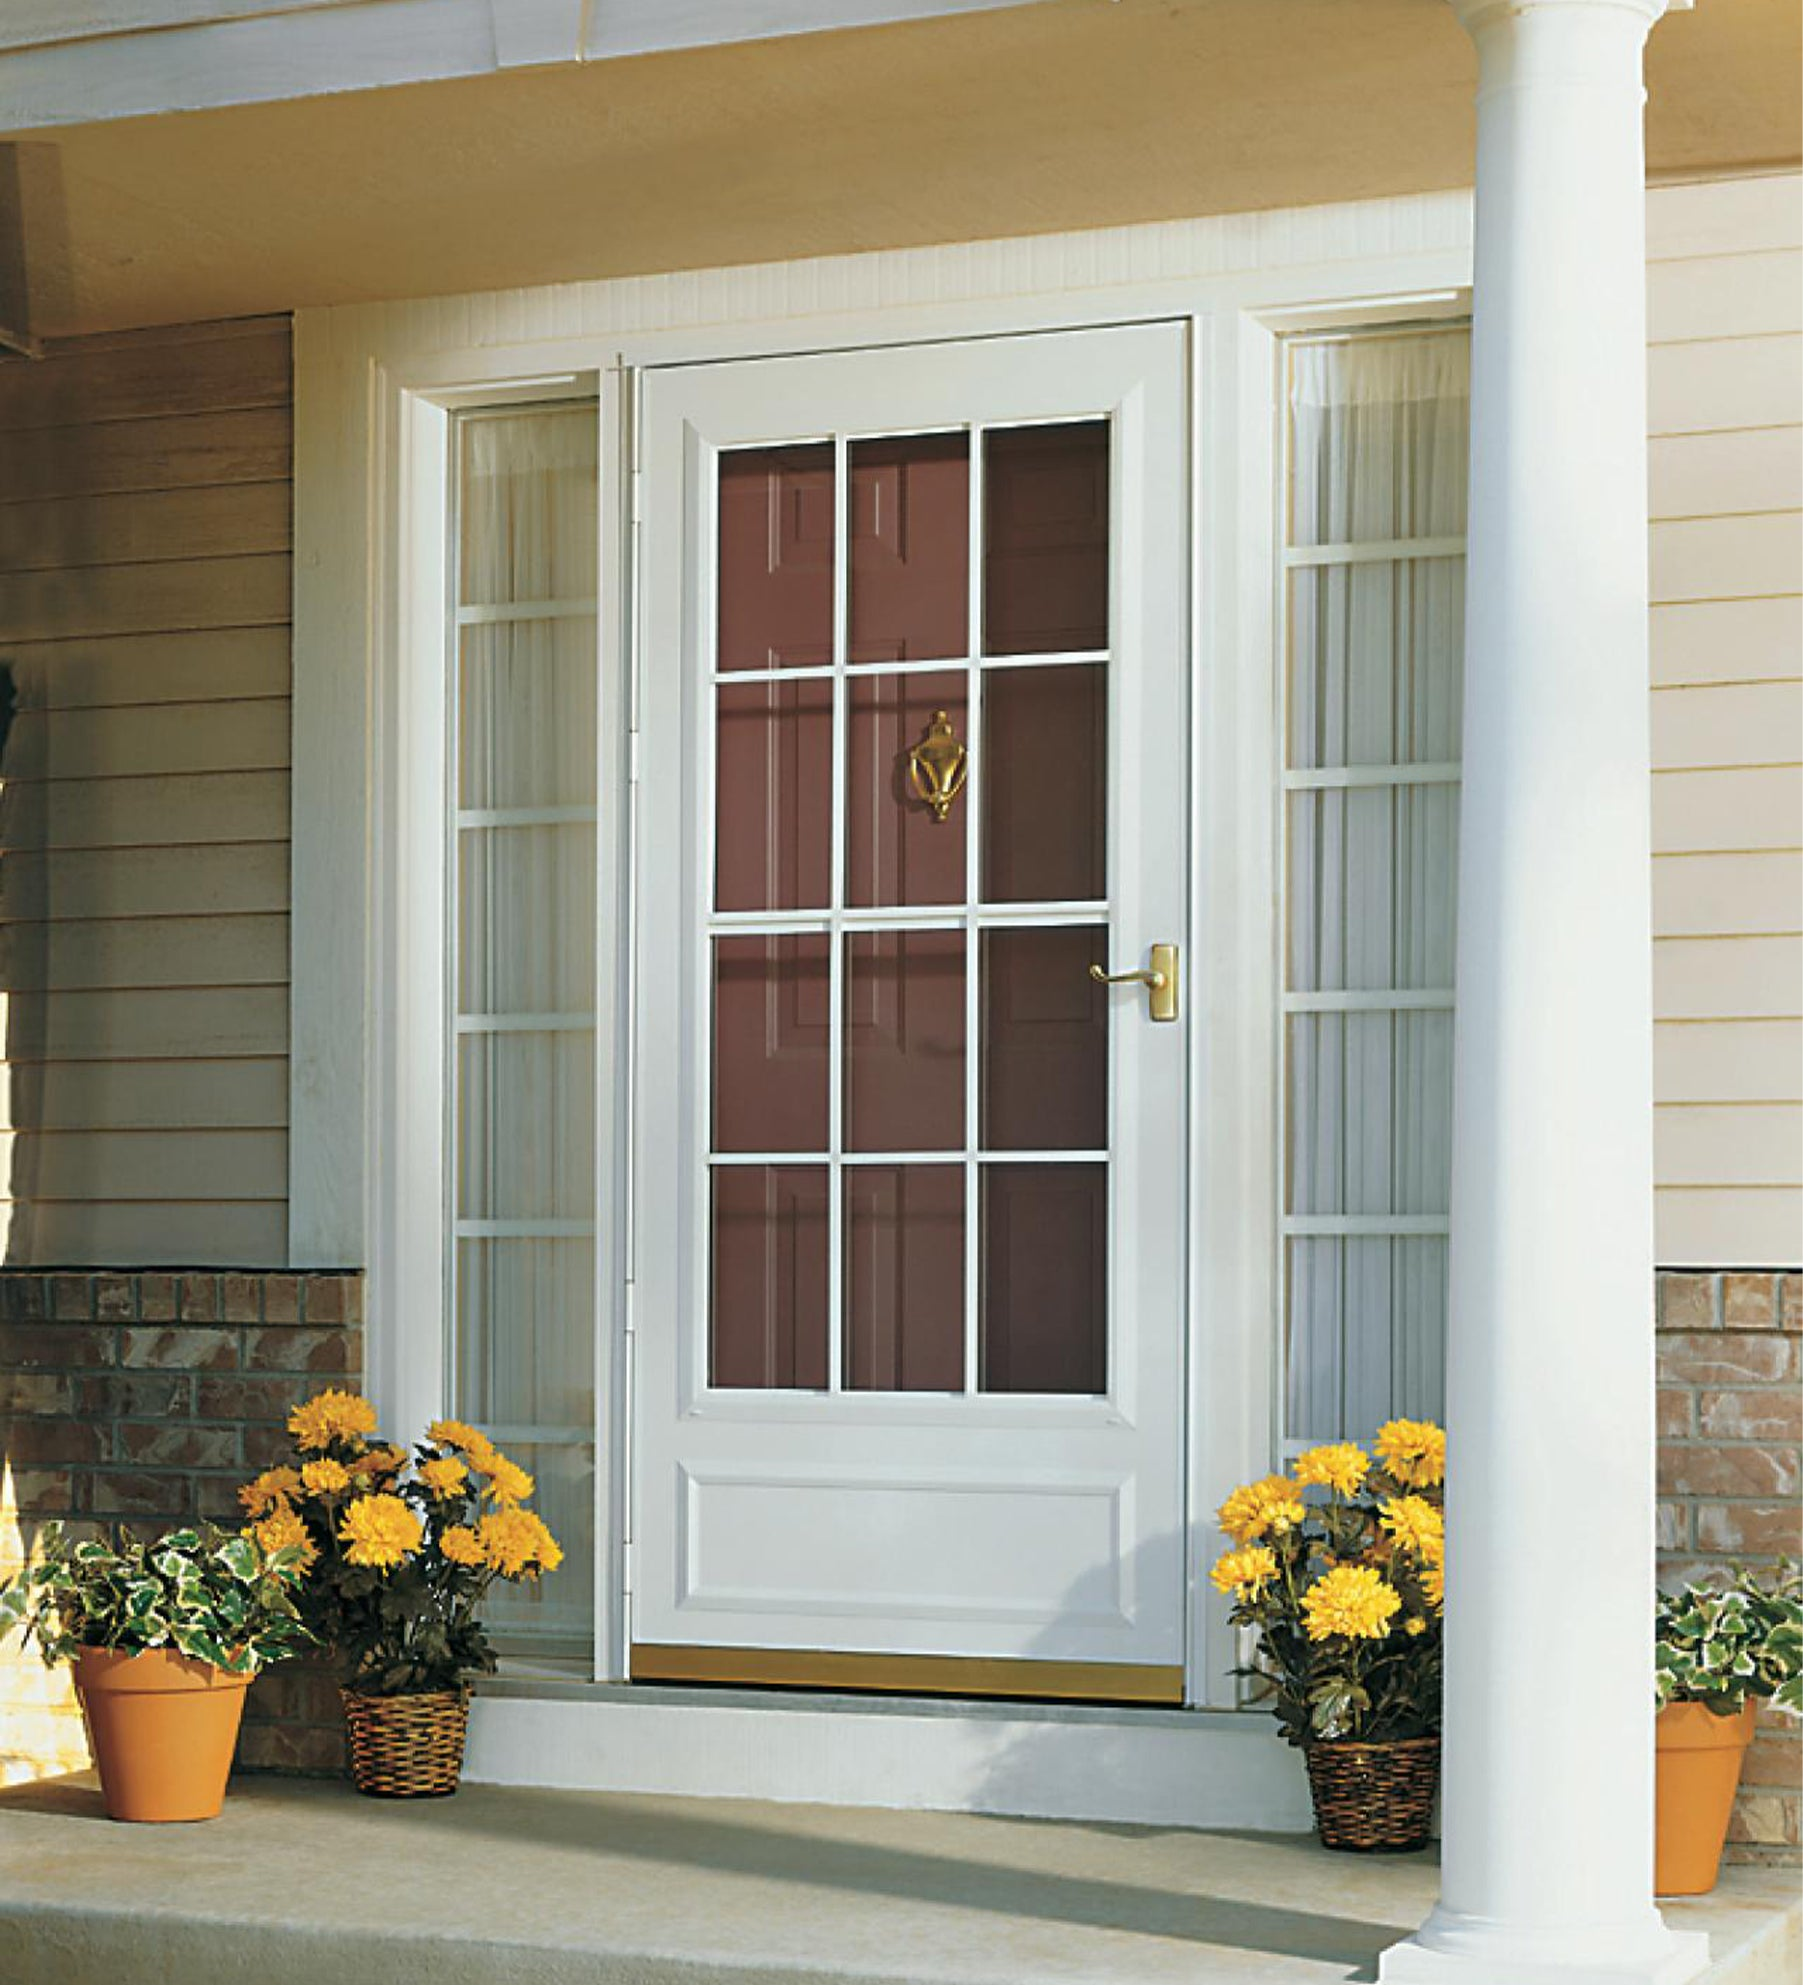 INSTALLED Larson Life Style Reversa Screen Storm Door w/ Hardware STARTING $589.99